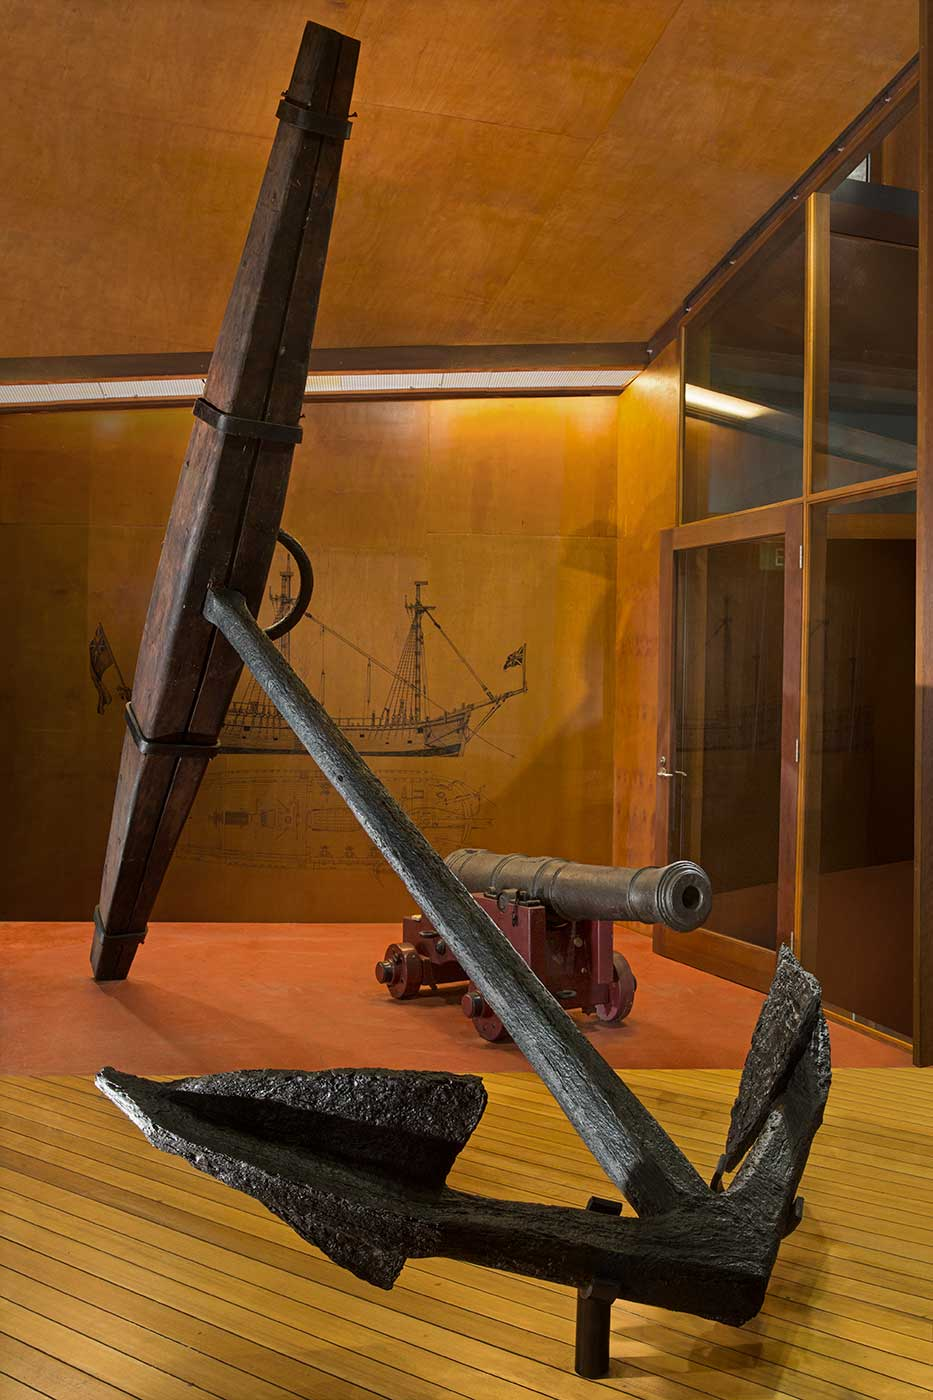 Museum display showing a metal ship's anchor with wooden stock. A cannon and diagram of a ship are also visible. - click to view larger image